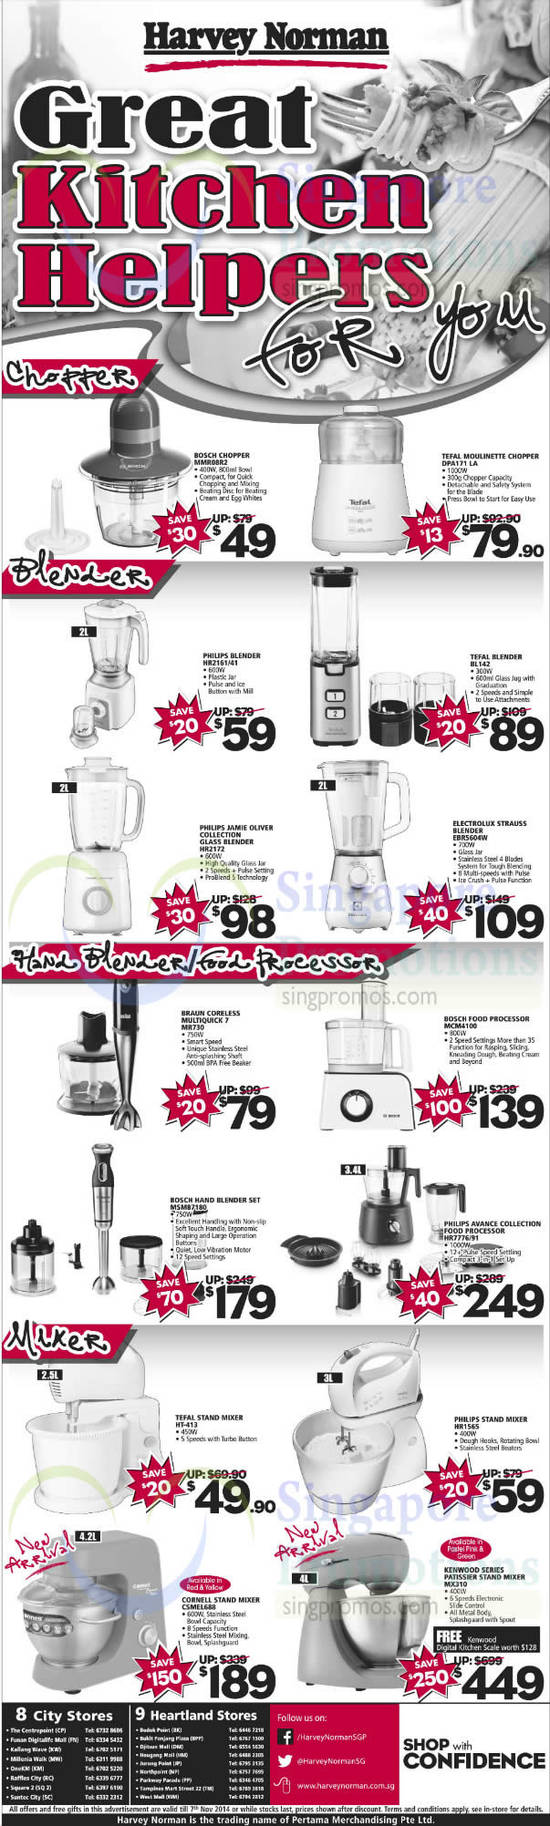 Featured image for Harvey Norman Digital Cameras, Notebooks & Appliances Offers 1 - 7 Nov 2014